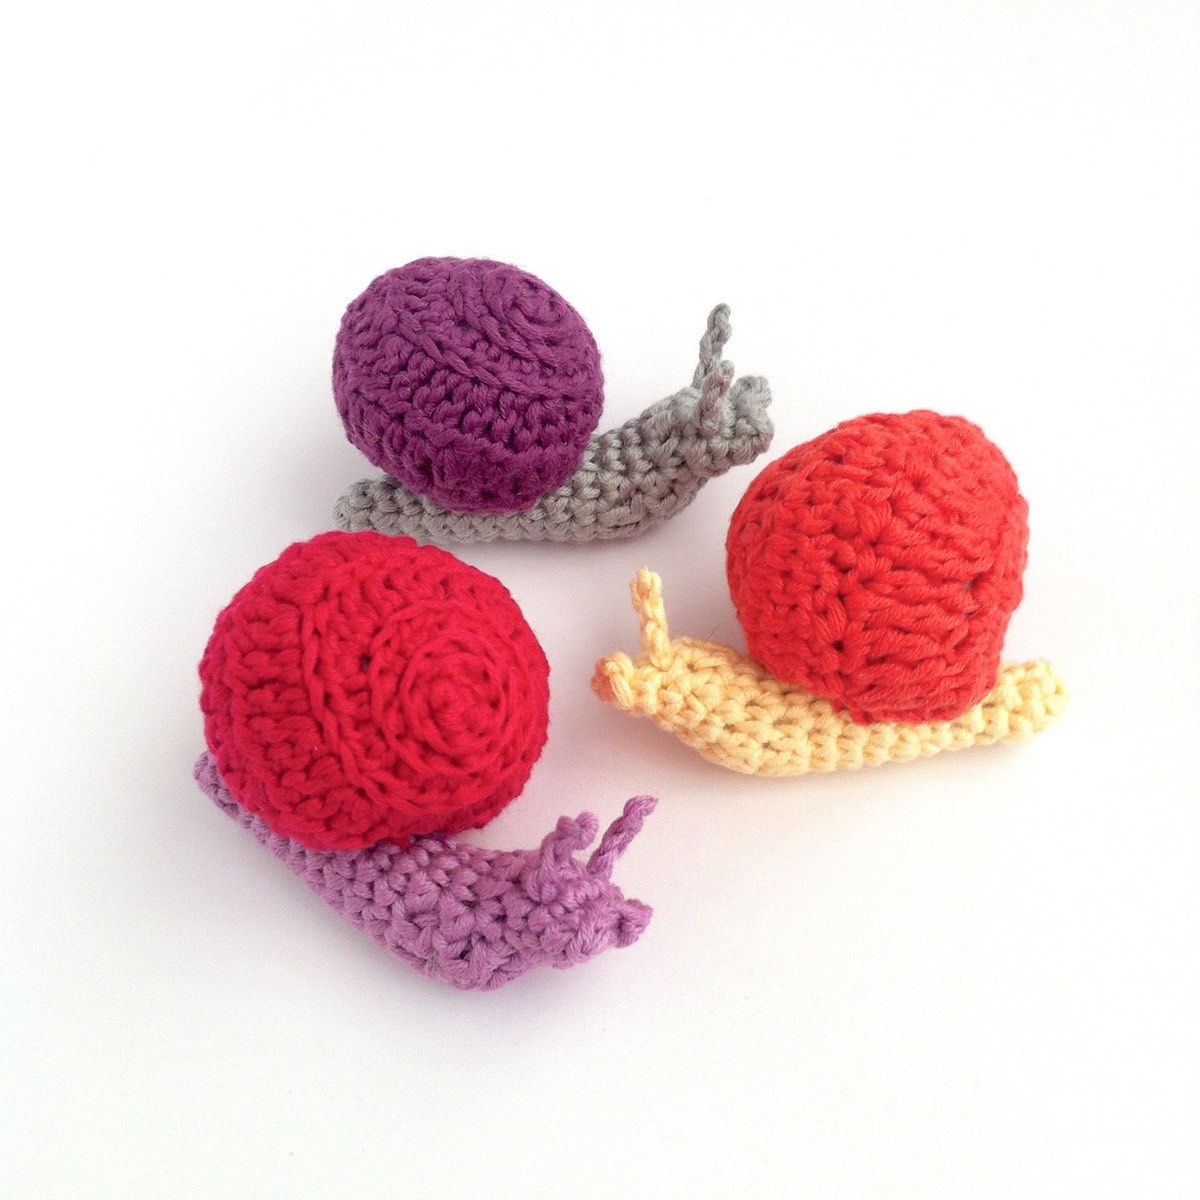 Picture of brightly-coloured hand-crocheted snails by Little Conkers